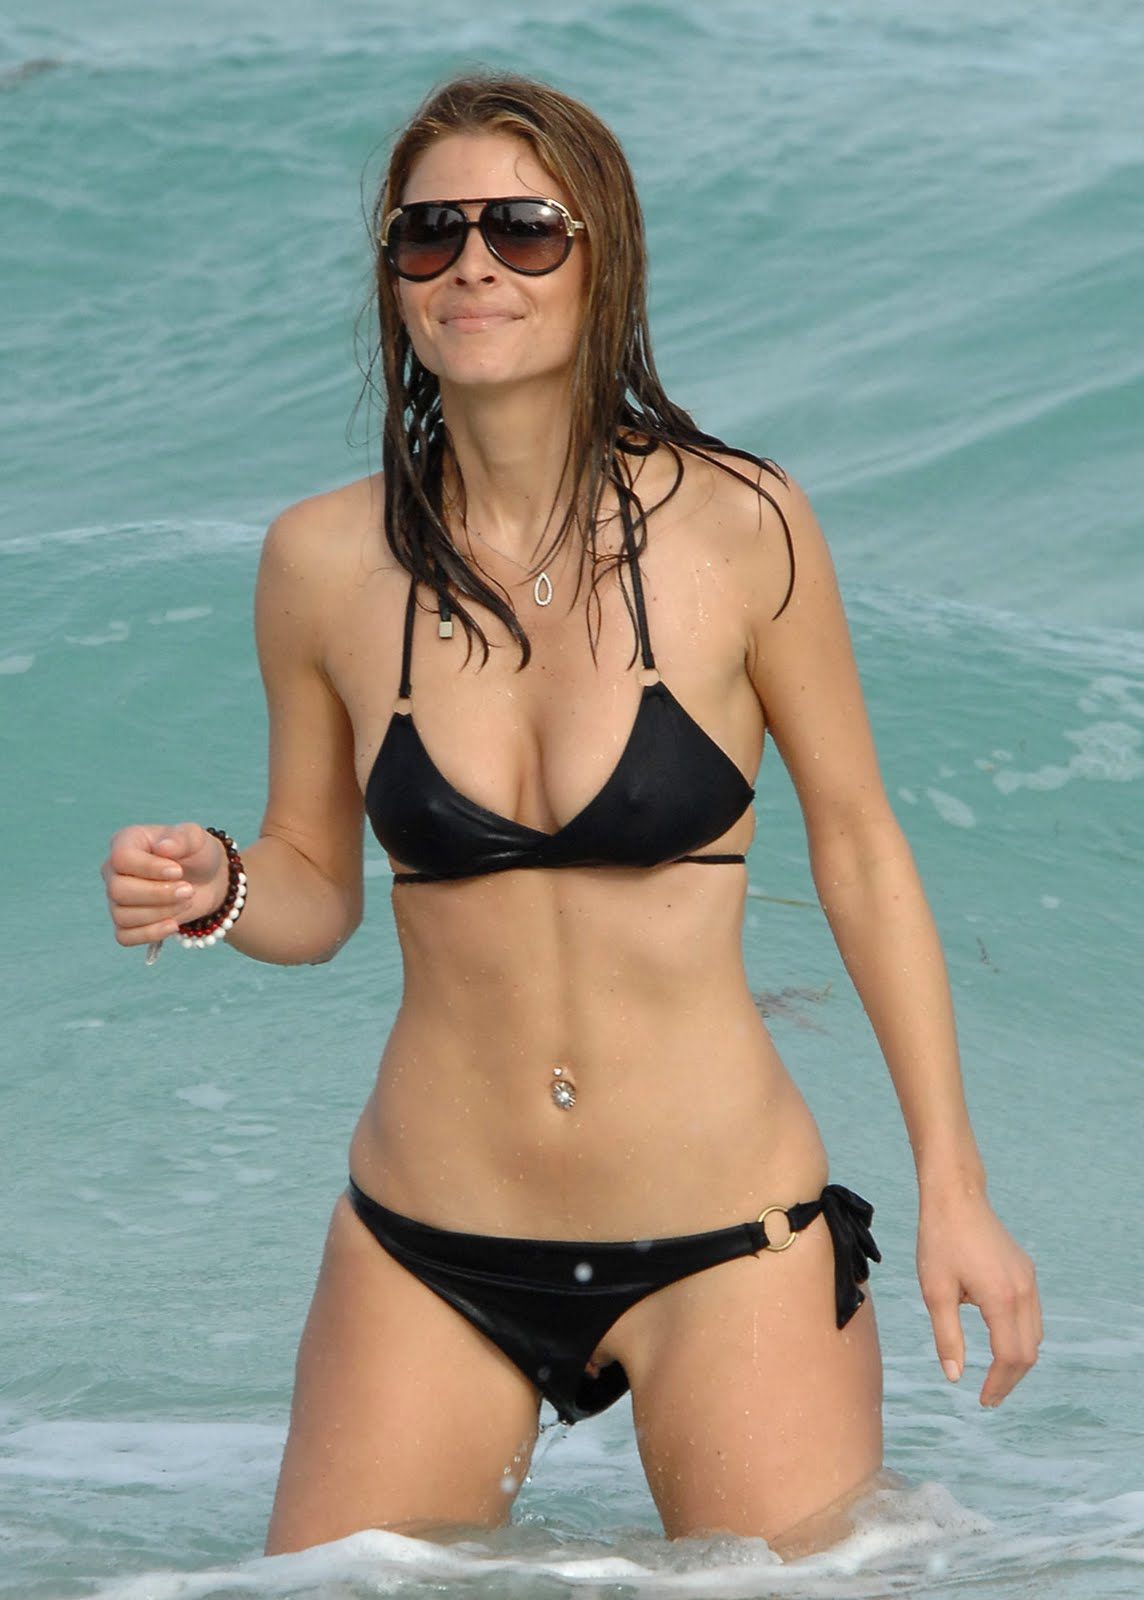 camel leather chair maria menounos bikini